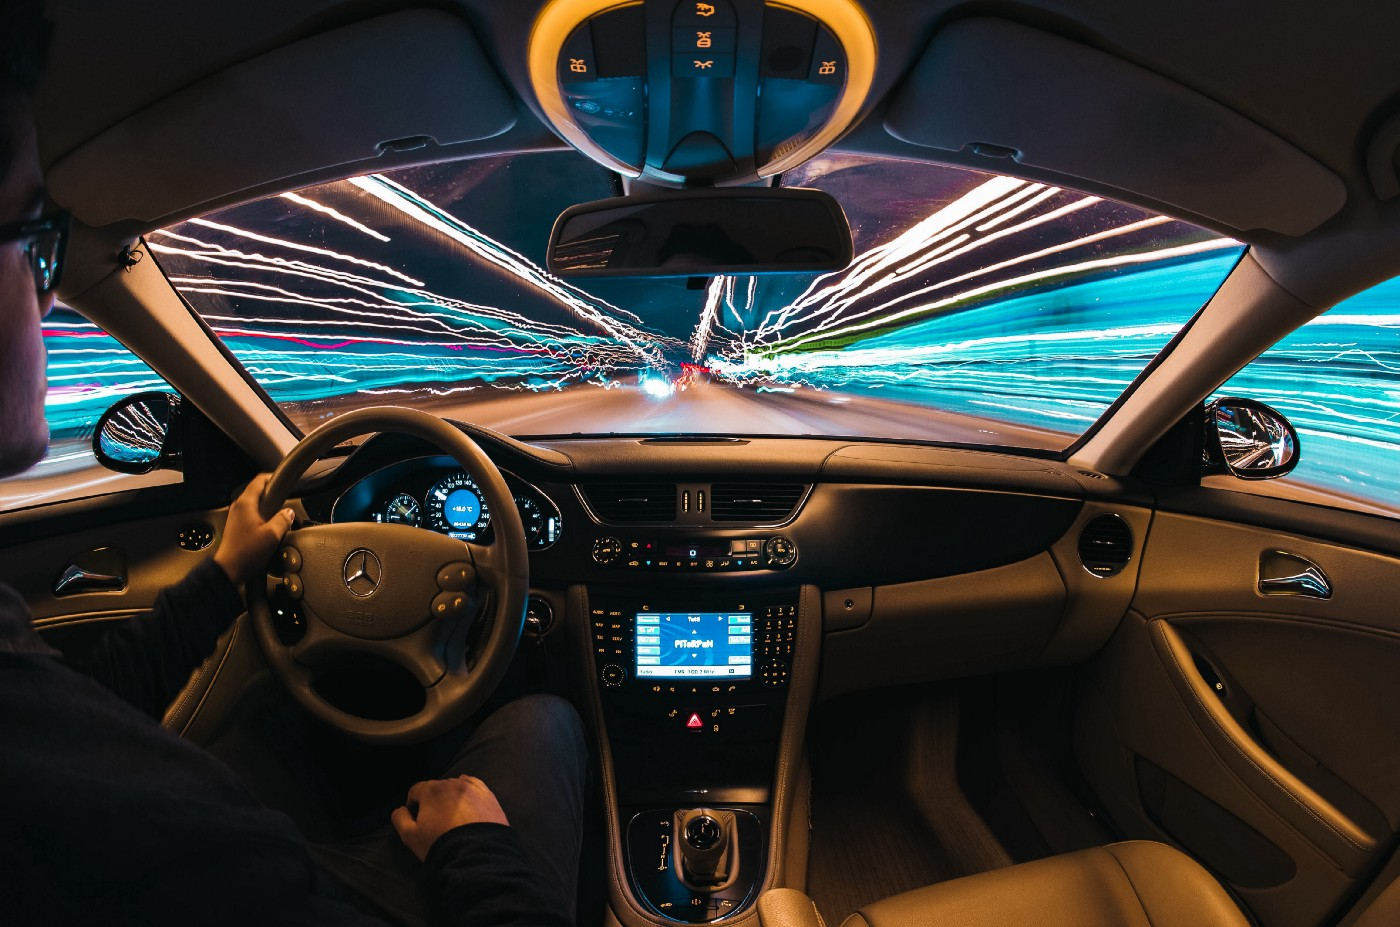 time lapse photo of a man driving a car taken from the interior, with visible lines of light outside the vehicle